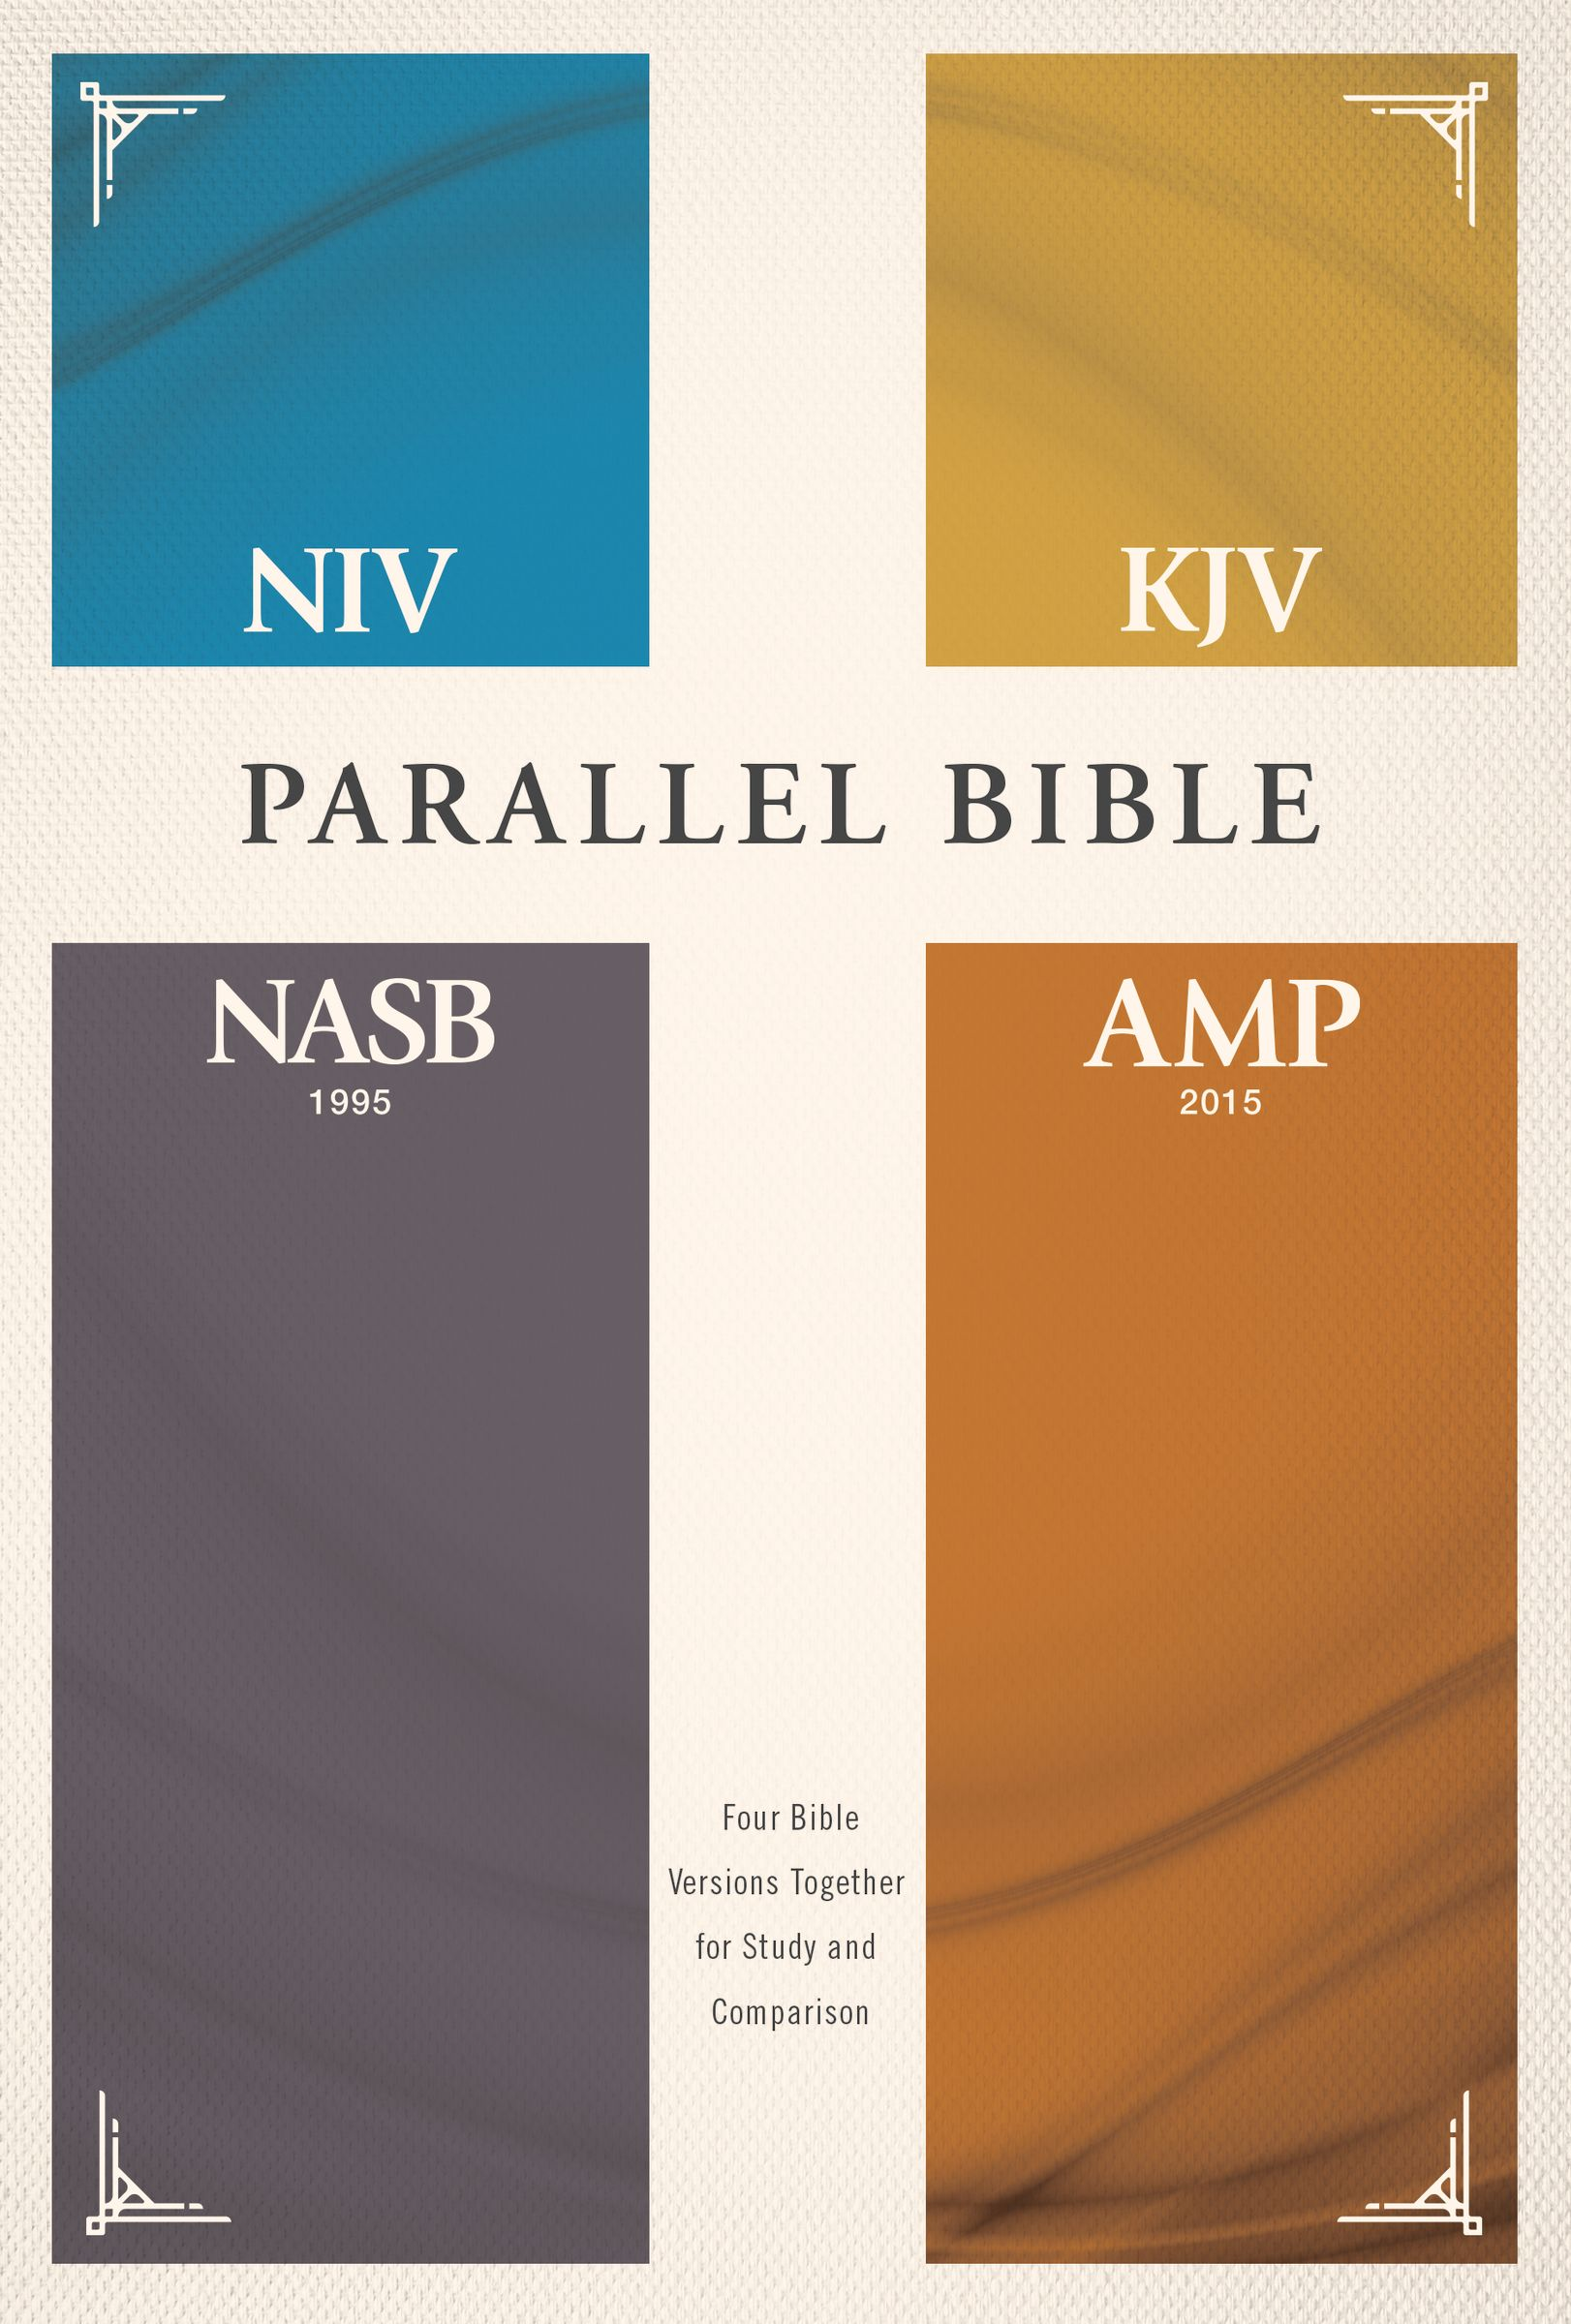 NIV, KJV, NASB, Amplified, Parallel Bible, Hardcover: Four Bible Versions Together for Study and Comparison